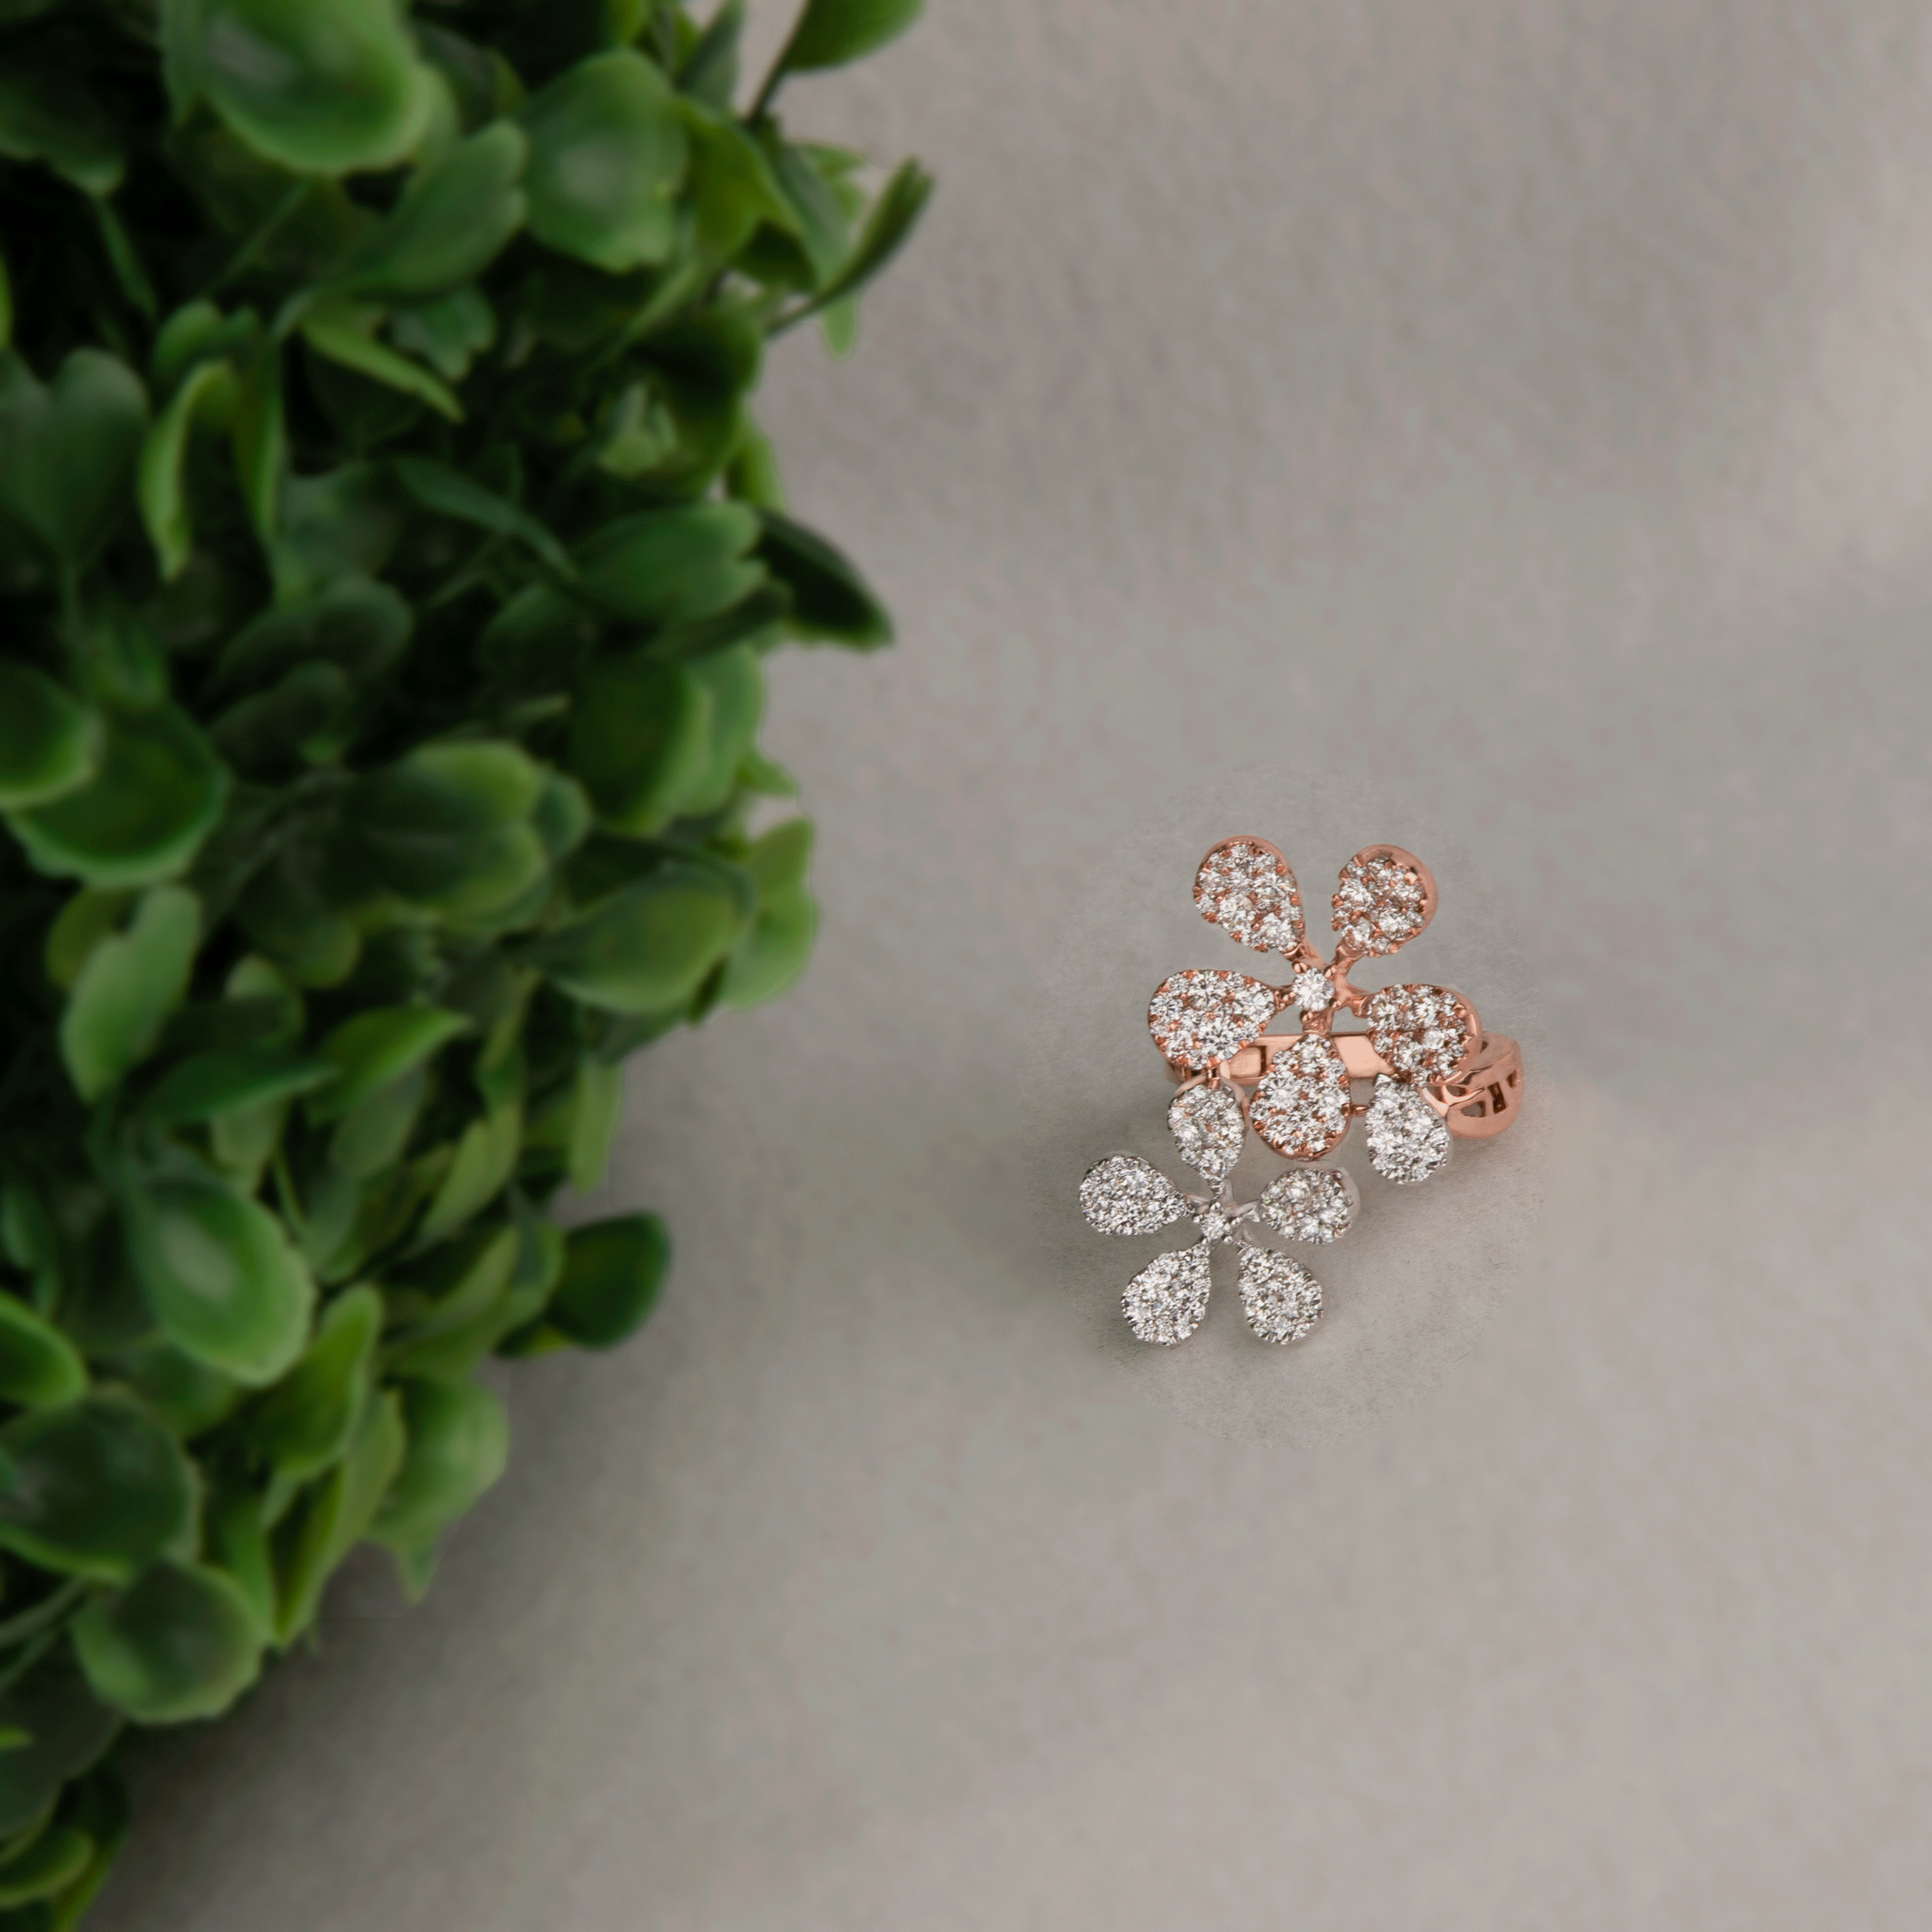 081b9b9c0 How about a diamond blossom?💎 Check out this amazing diamond ring only at  the